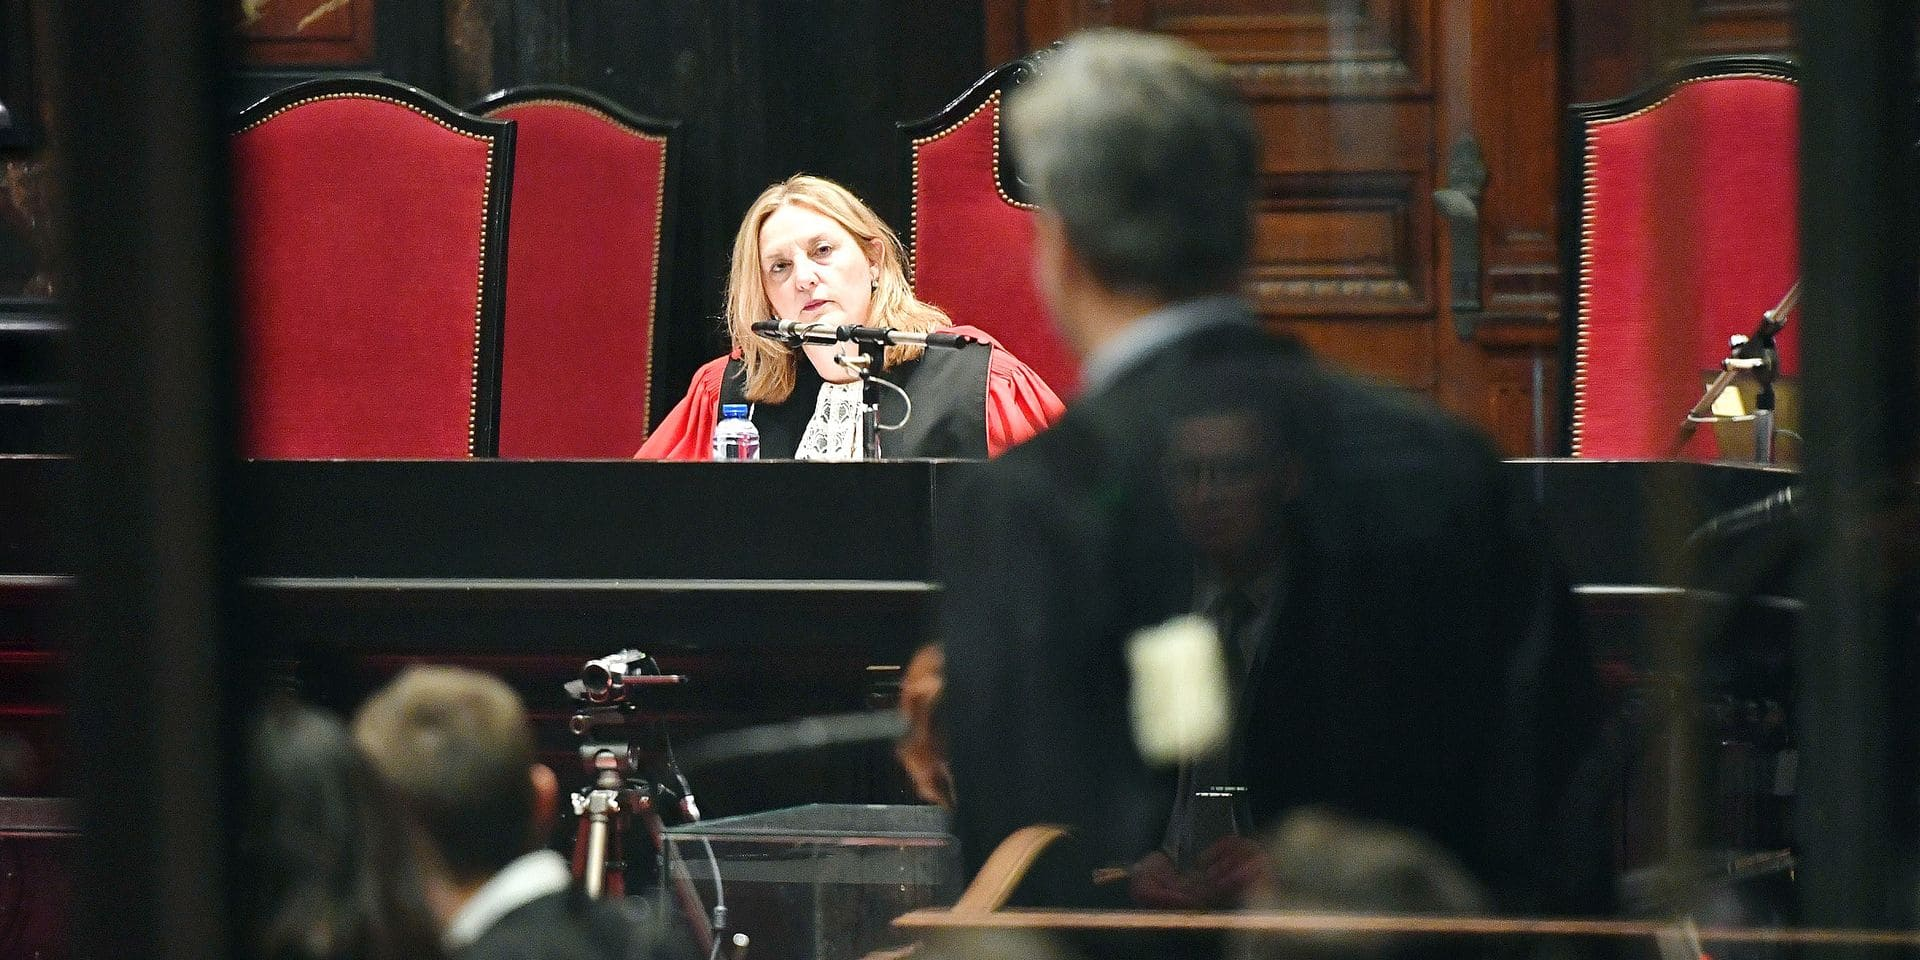 Chairwoman of the court Laurence Massart pictured during a preliminary session of the trial for the terrorist attack at the Jewish Museum in Brussels, at the Brussels Justice Palace, in Brussels, Thursday 20 December 2018. Nemmouche and Bendrer are accused of committing a terrorist attack on 24 May 2014 at the Brussels Jewish Museum, killing four people. BELGA PHOTO POOL GEERT VANDEN WIJNGAERT